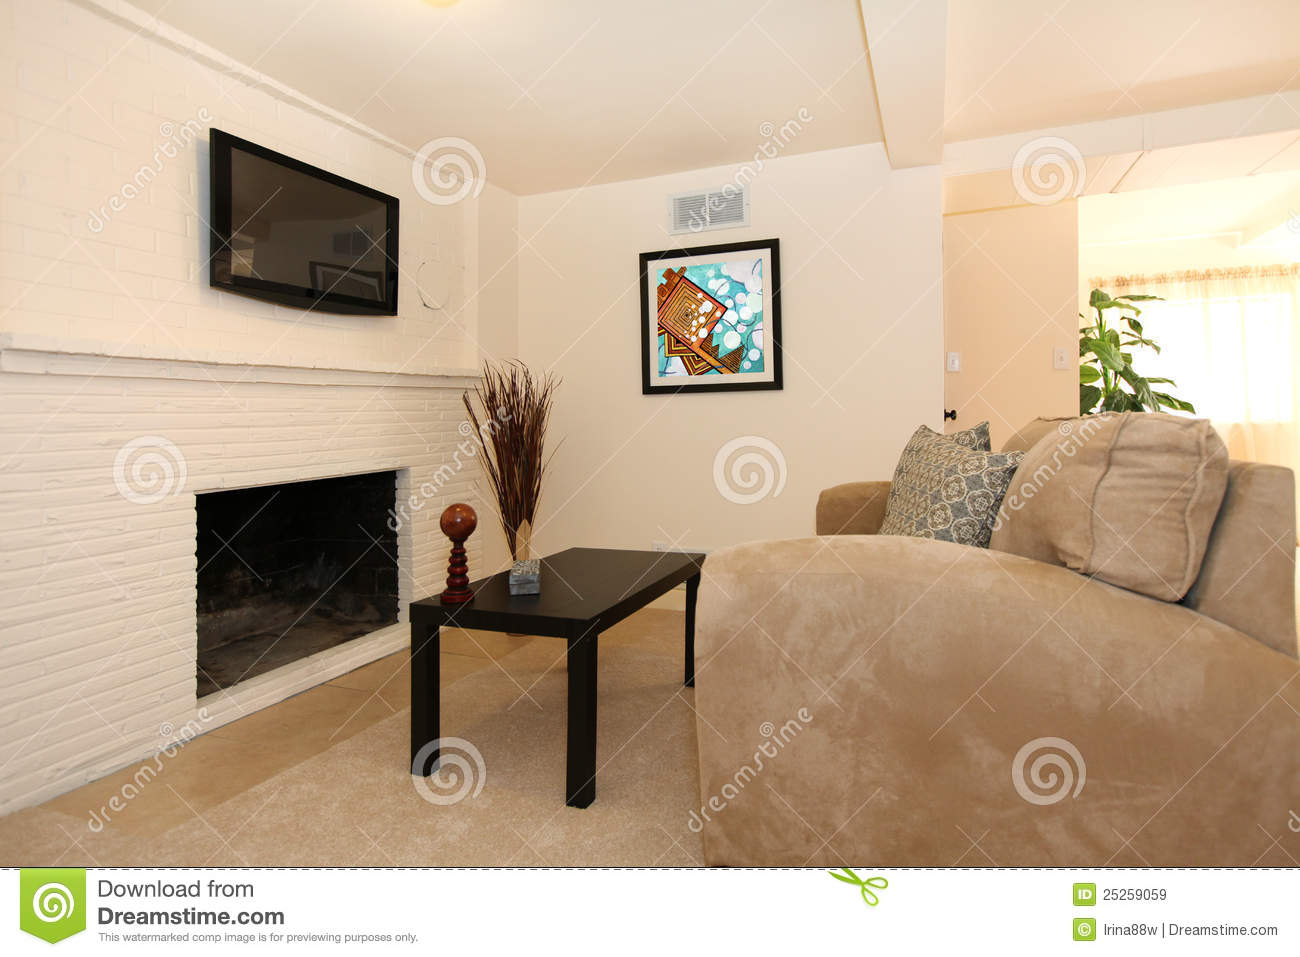 Einfaches wohnzimmer mit fernsehapparat und kamin for 1000 ideas for home design and decoration